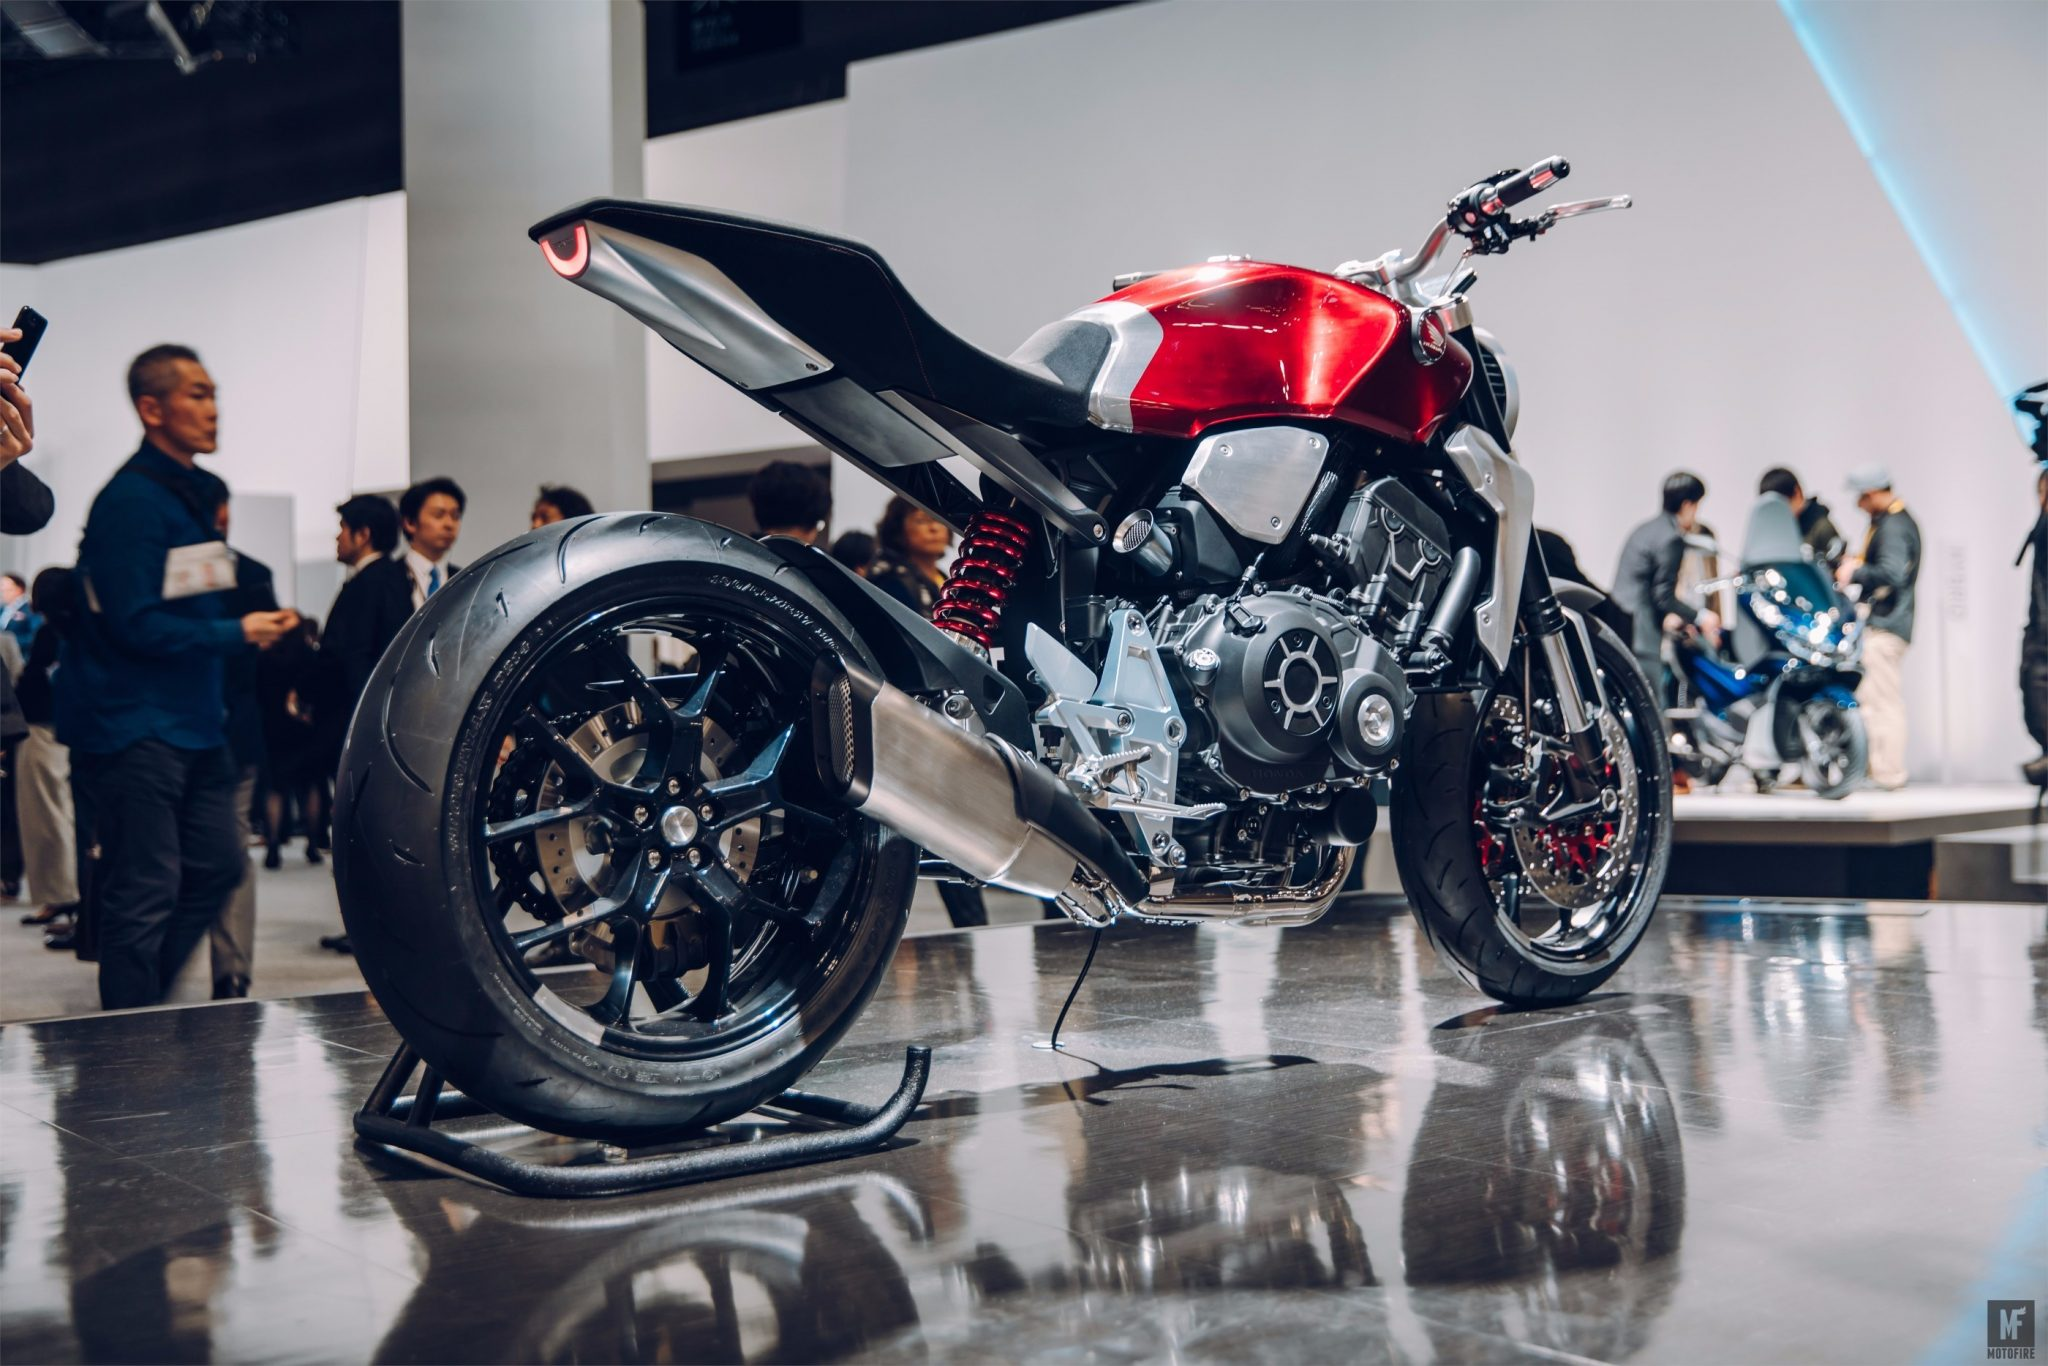 Honda Envisions The Future Of Cafe Racers With Their Neo